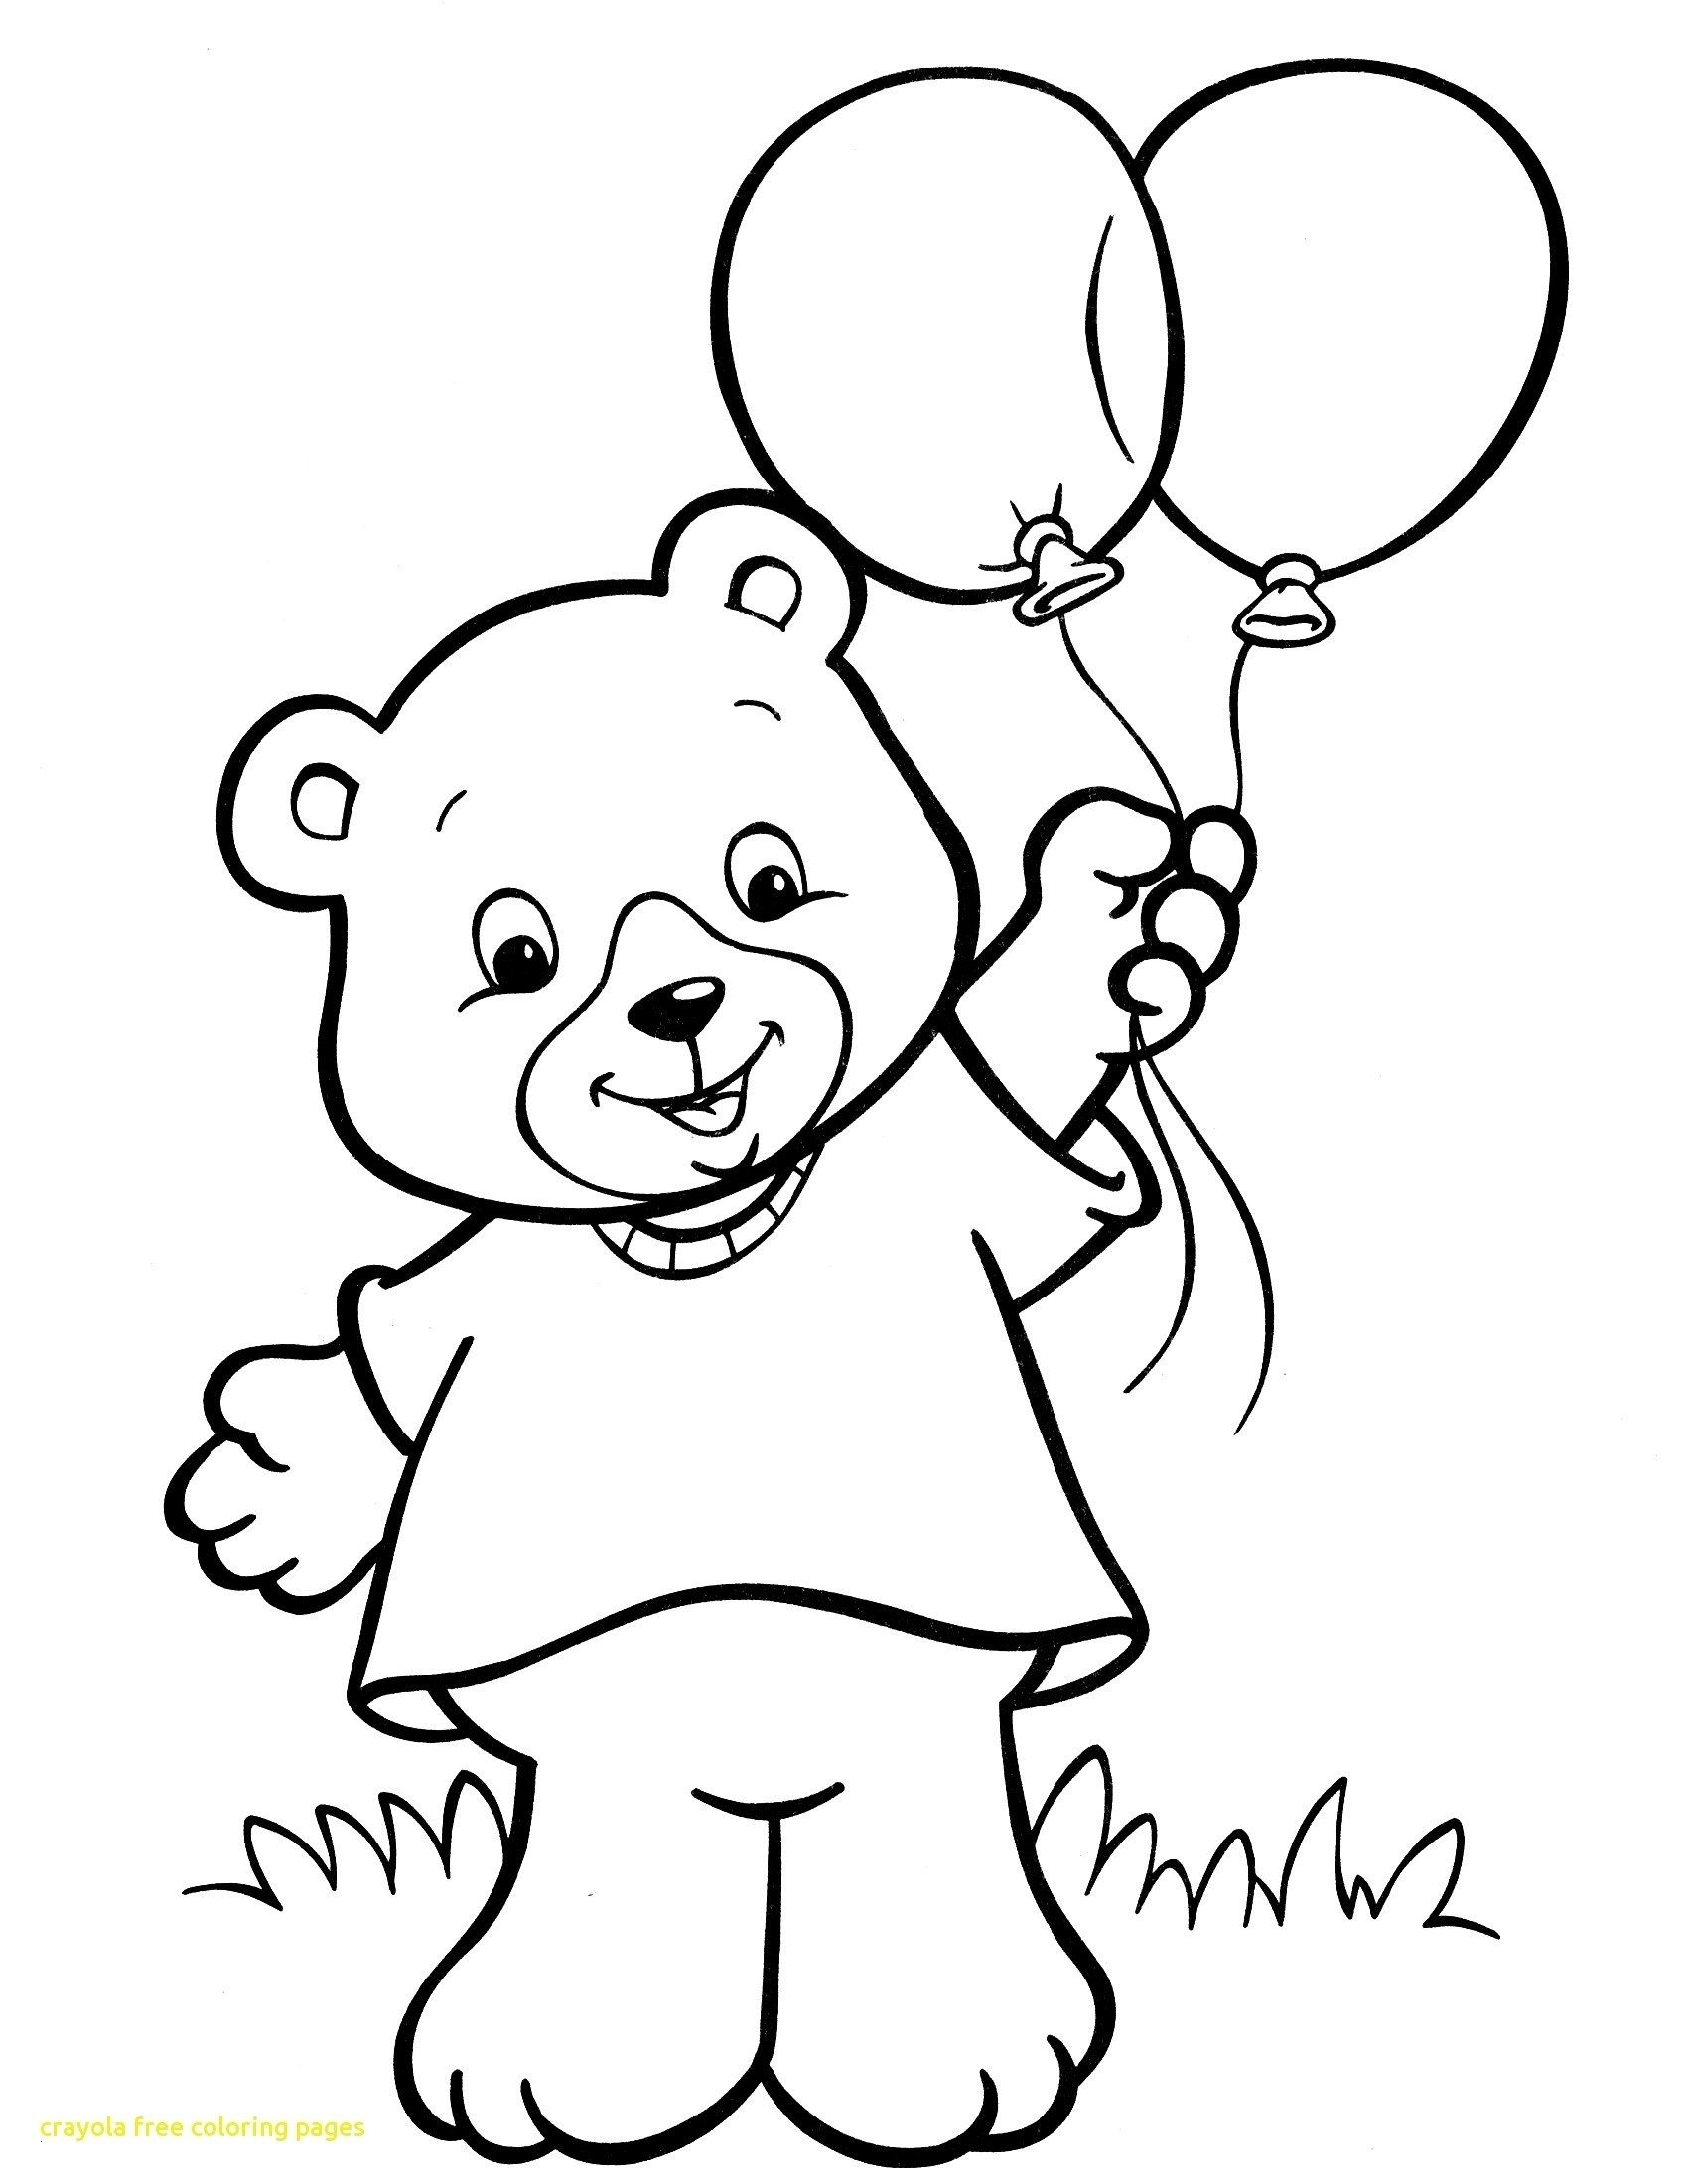 Color Red Crafts For Toddlers Tags Printable Pics To Childrens Pictures  Colour Free Online Coloring Book – Stephenbenedictdyson